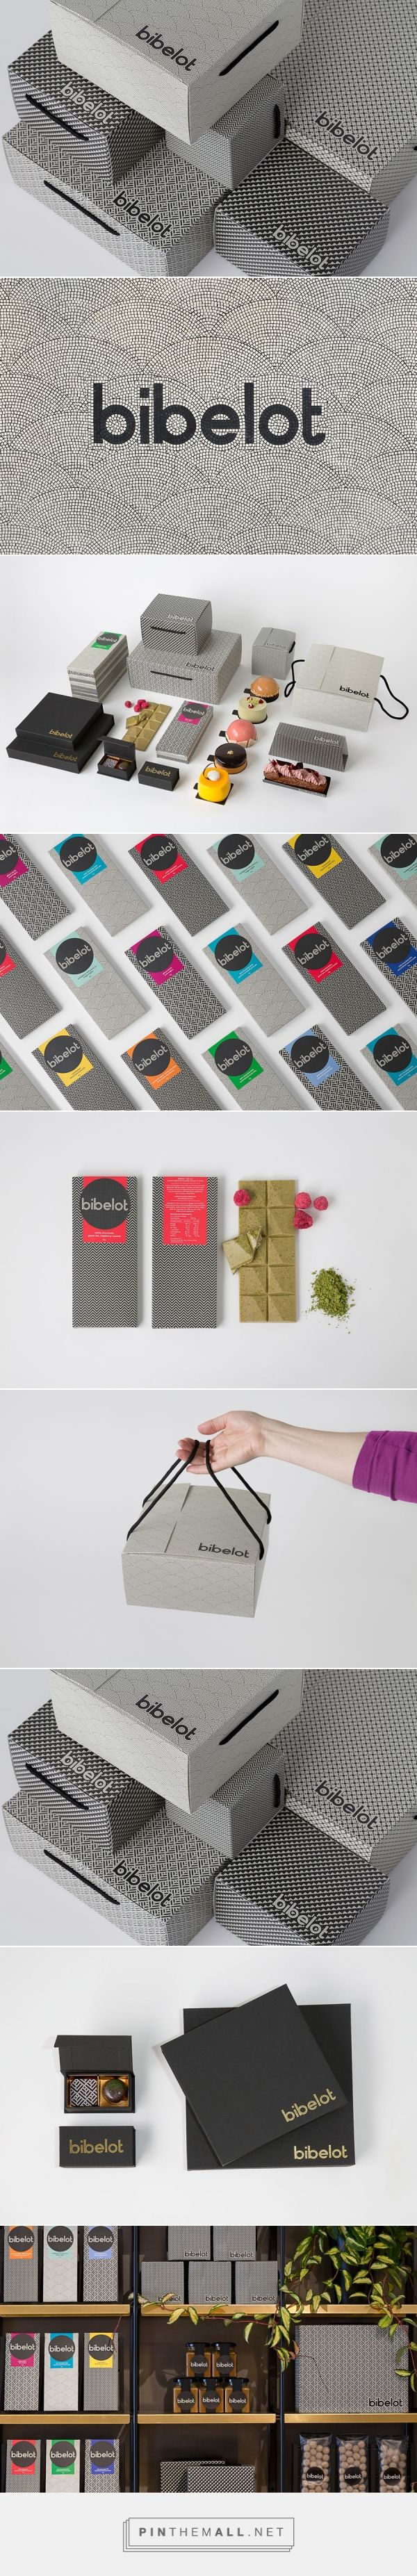 483 best images about chocolate packaging on pinterest packaging design chocolate boxes and. Black Bedroom Furniture Sets. Home Design Ideas